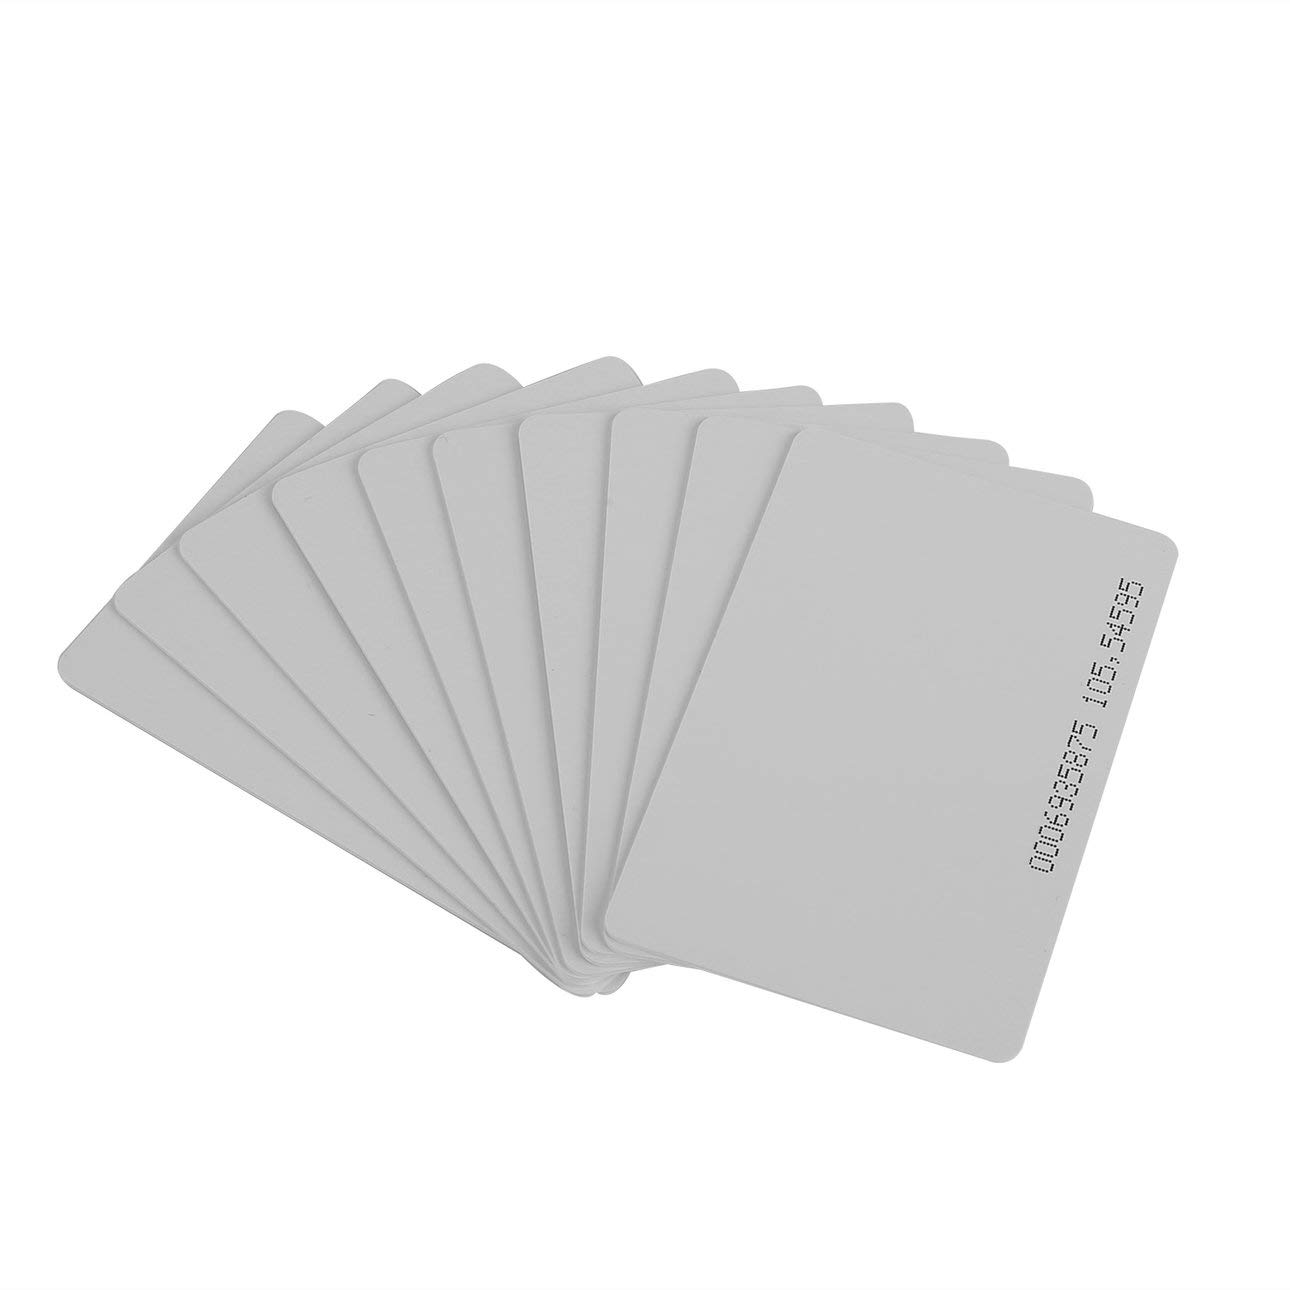 Liobaba 10 Pcs 125KHz EM4100/TK4100 RFID Proximity ID Smart Card 0.85mm Thin Cards for ID and Access Control